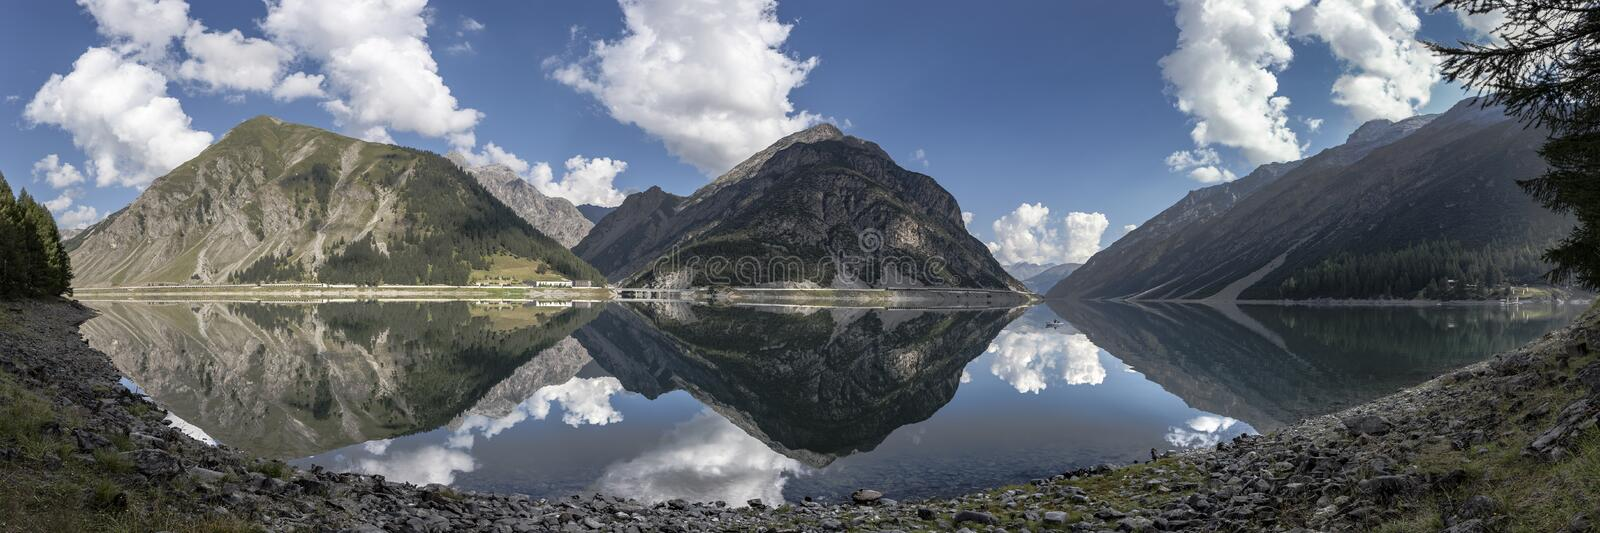 Panorama Landscape with Mountain Lake and a Boat stock photography